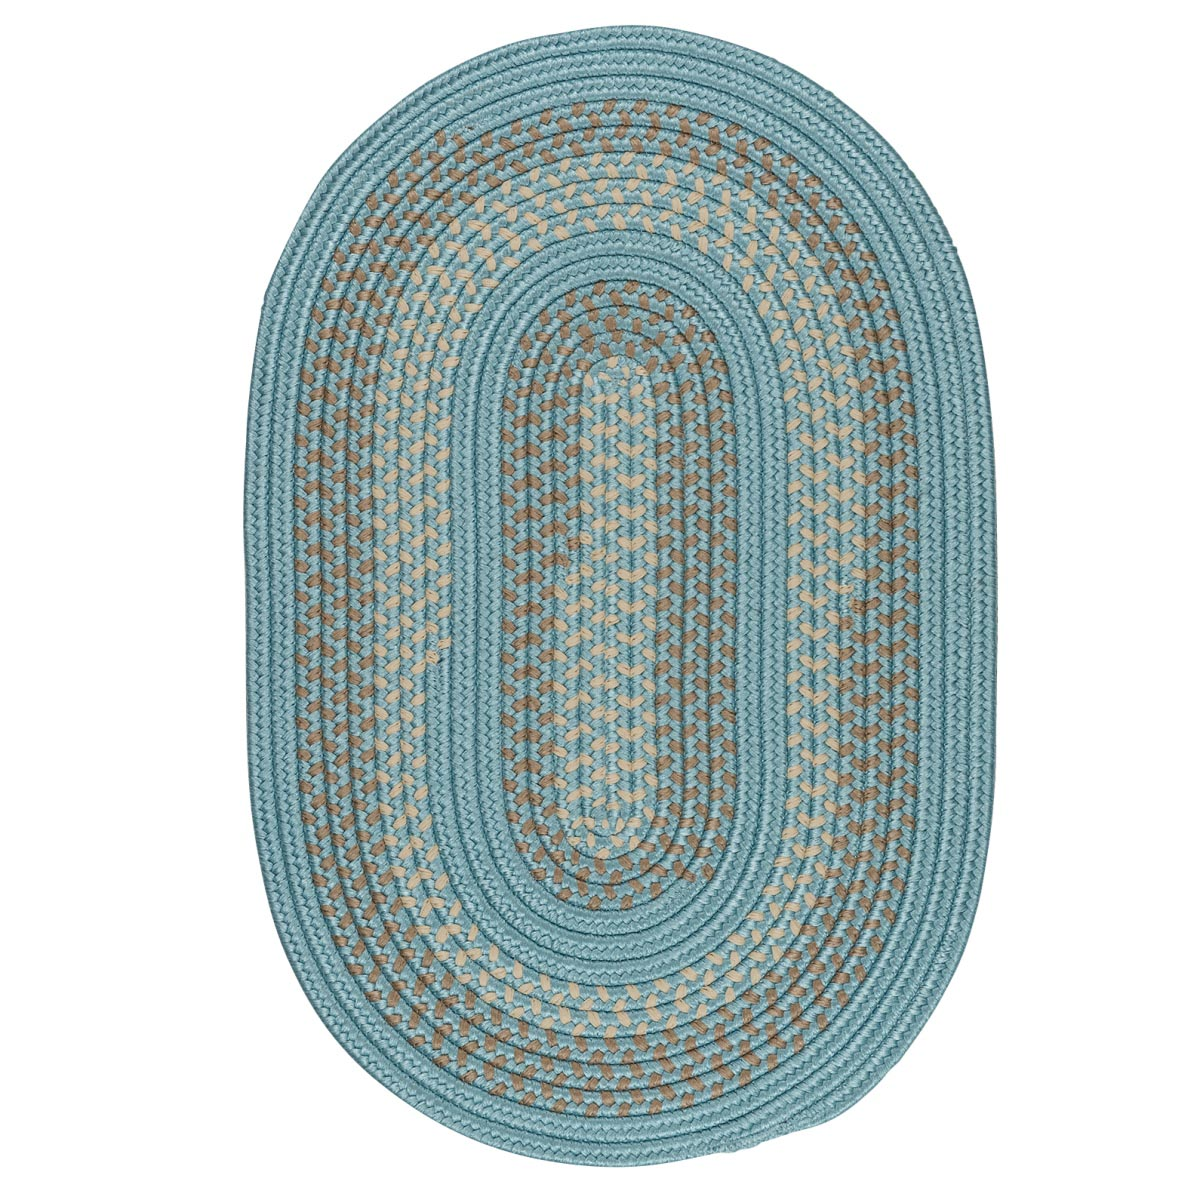 Georgetown Federal Blue Outdoor Braided Oval Rugs